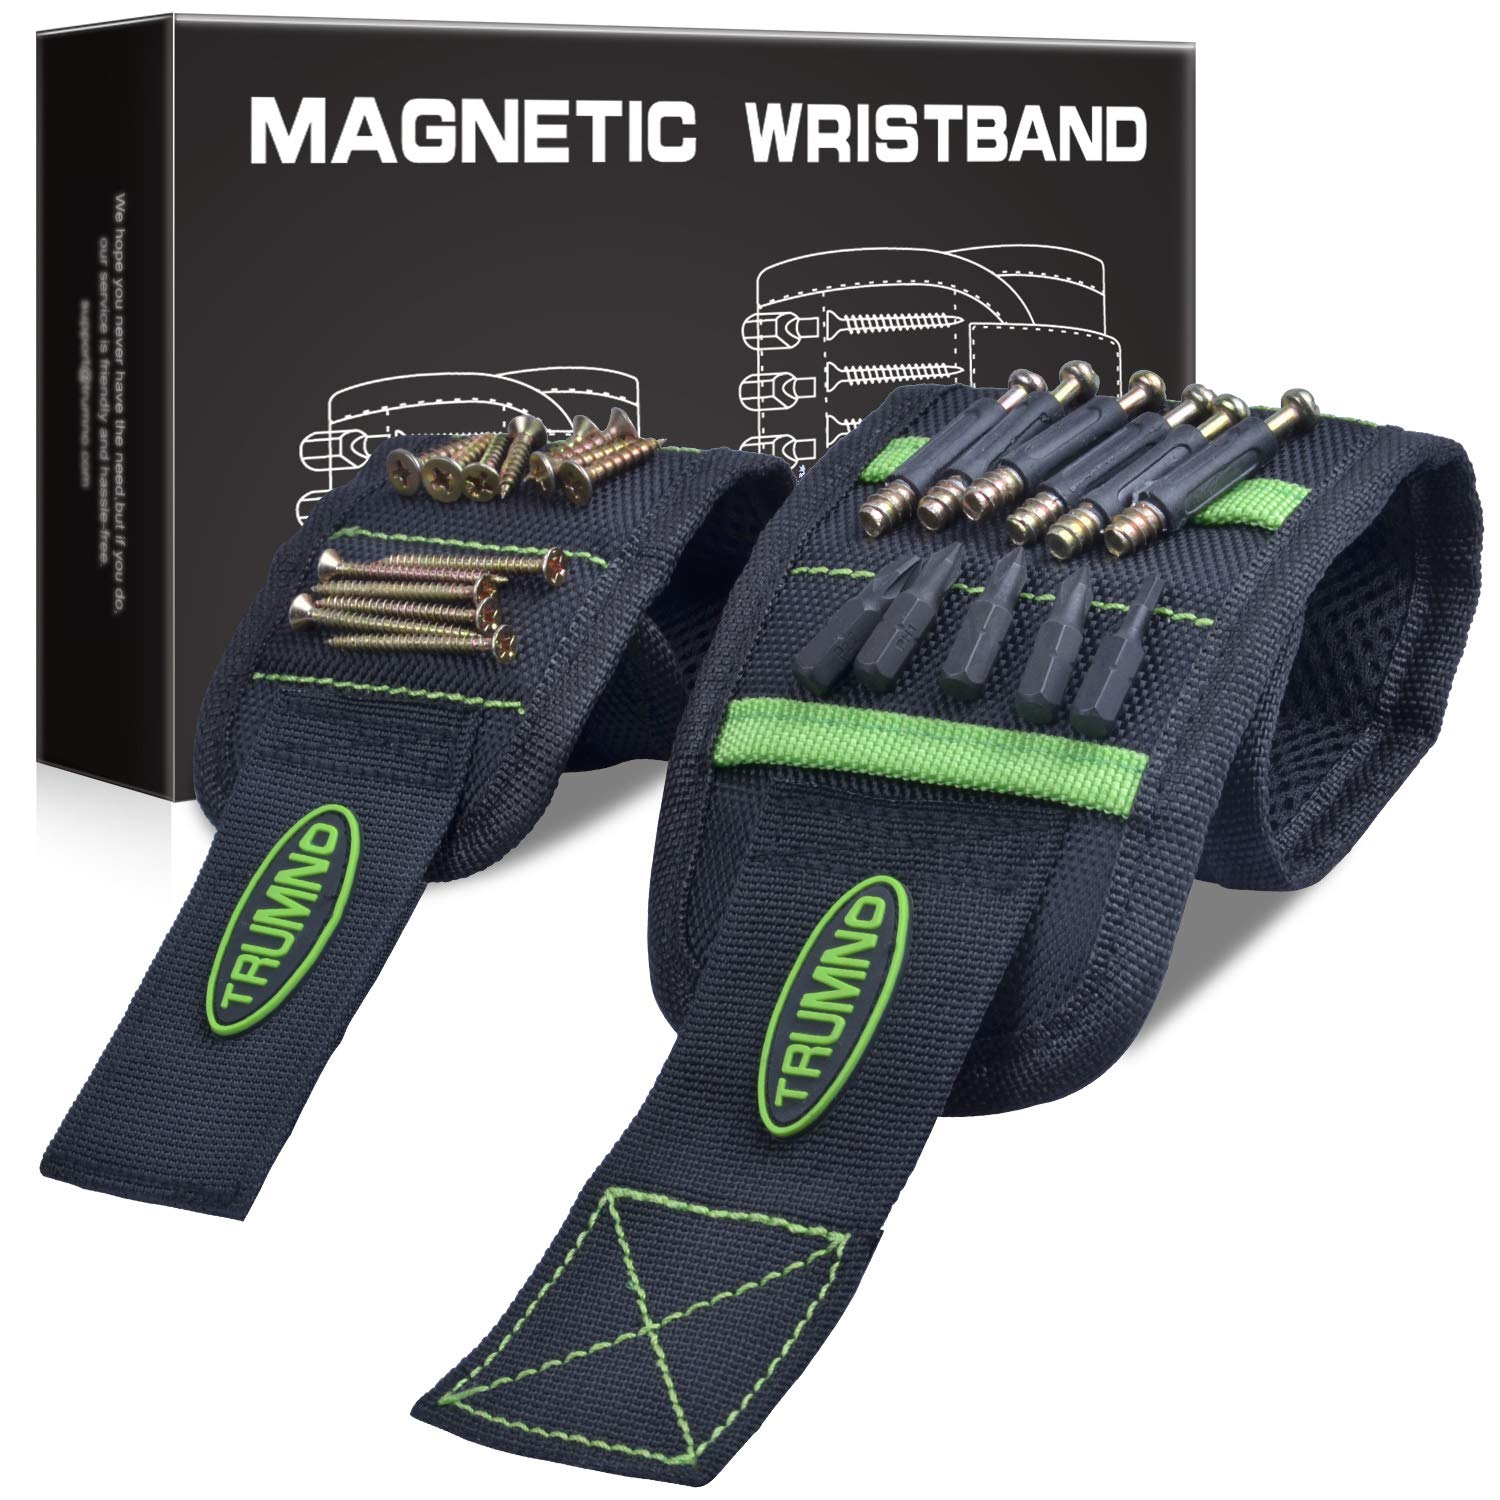 Trumno Magnetic Wristband for Holding Screws Tools Set of 2 Sizes Best Unique Christmas Gift for Husband Men DIY Handyman Dad Father Him Her Women Green